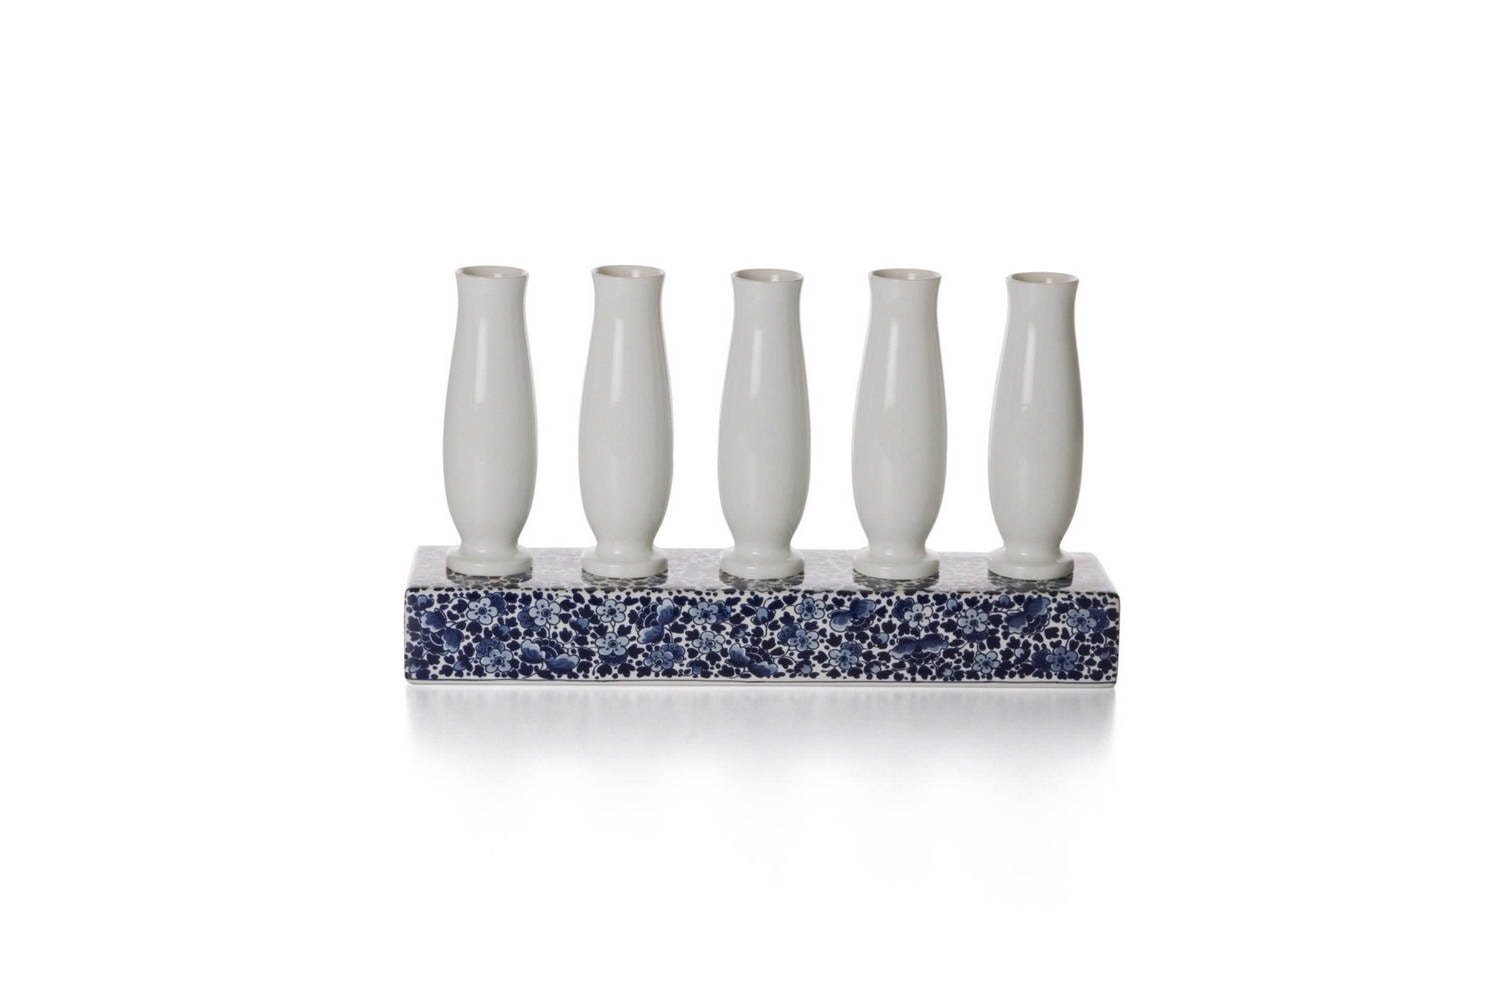 Delft Blue No. 05 Vase by Marcel Wanders for Moooi